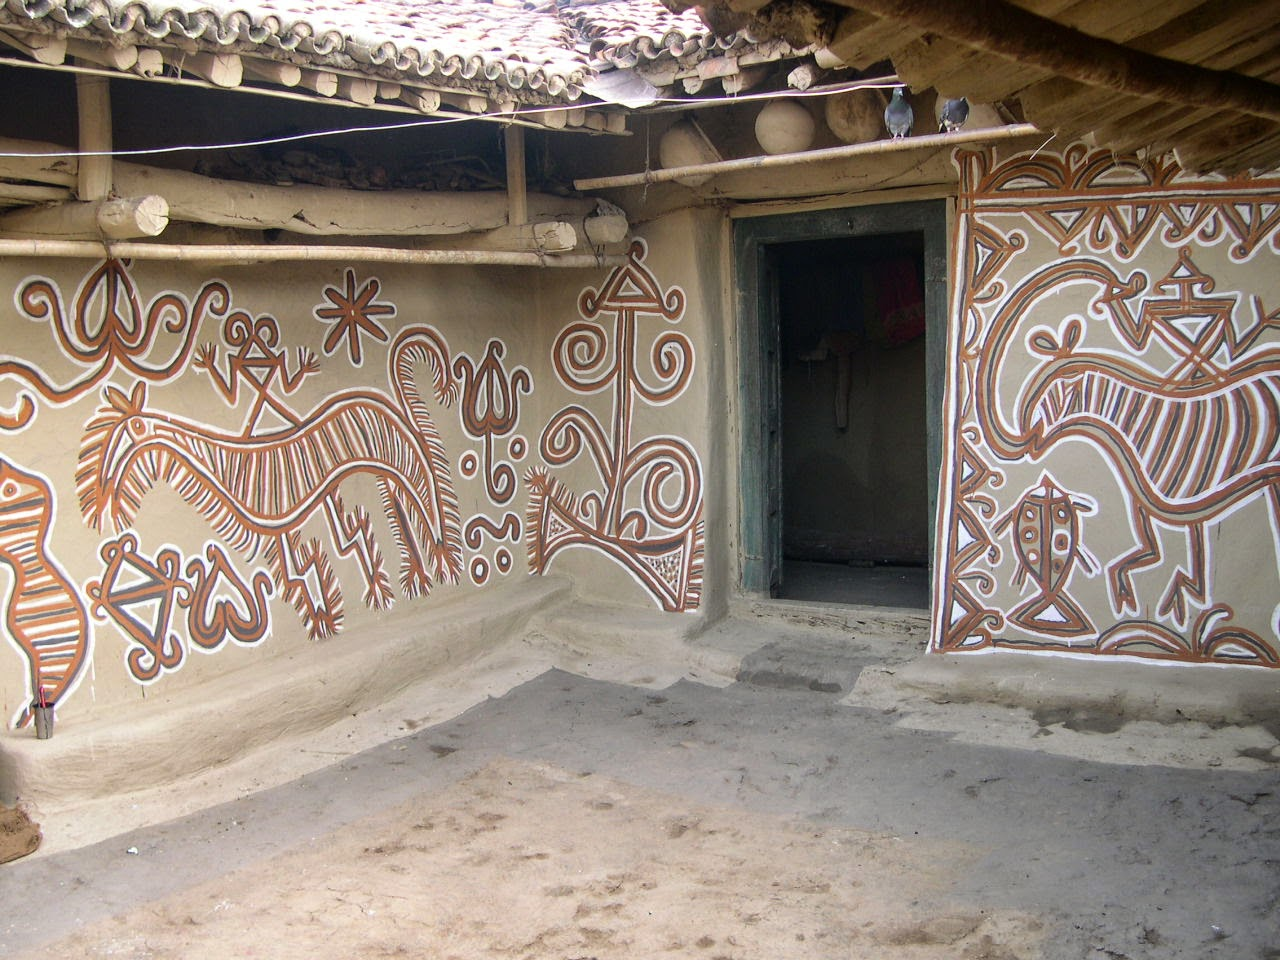 Tribal Art of Hazaribagh  The Painted Houses and the Women Artists     The Painted Houses and the Women Artists of Hazaribagh